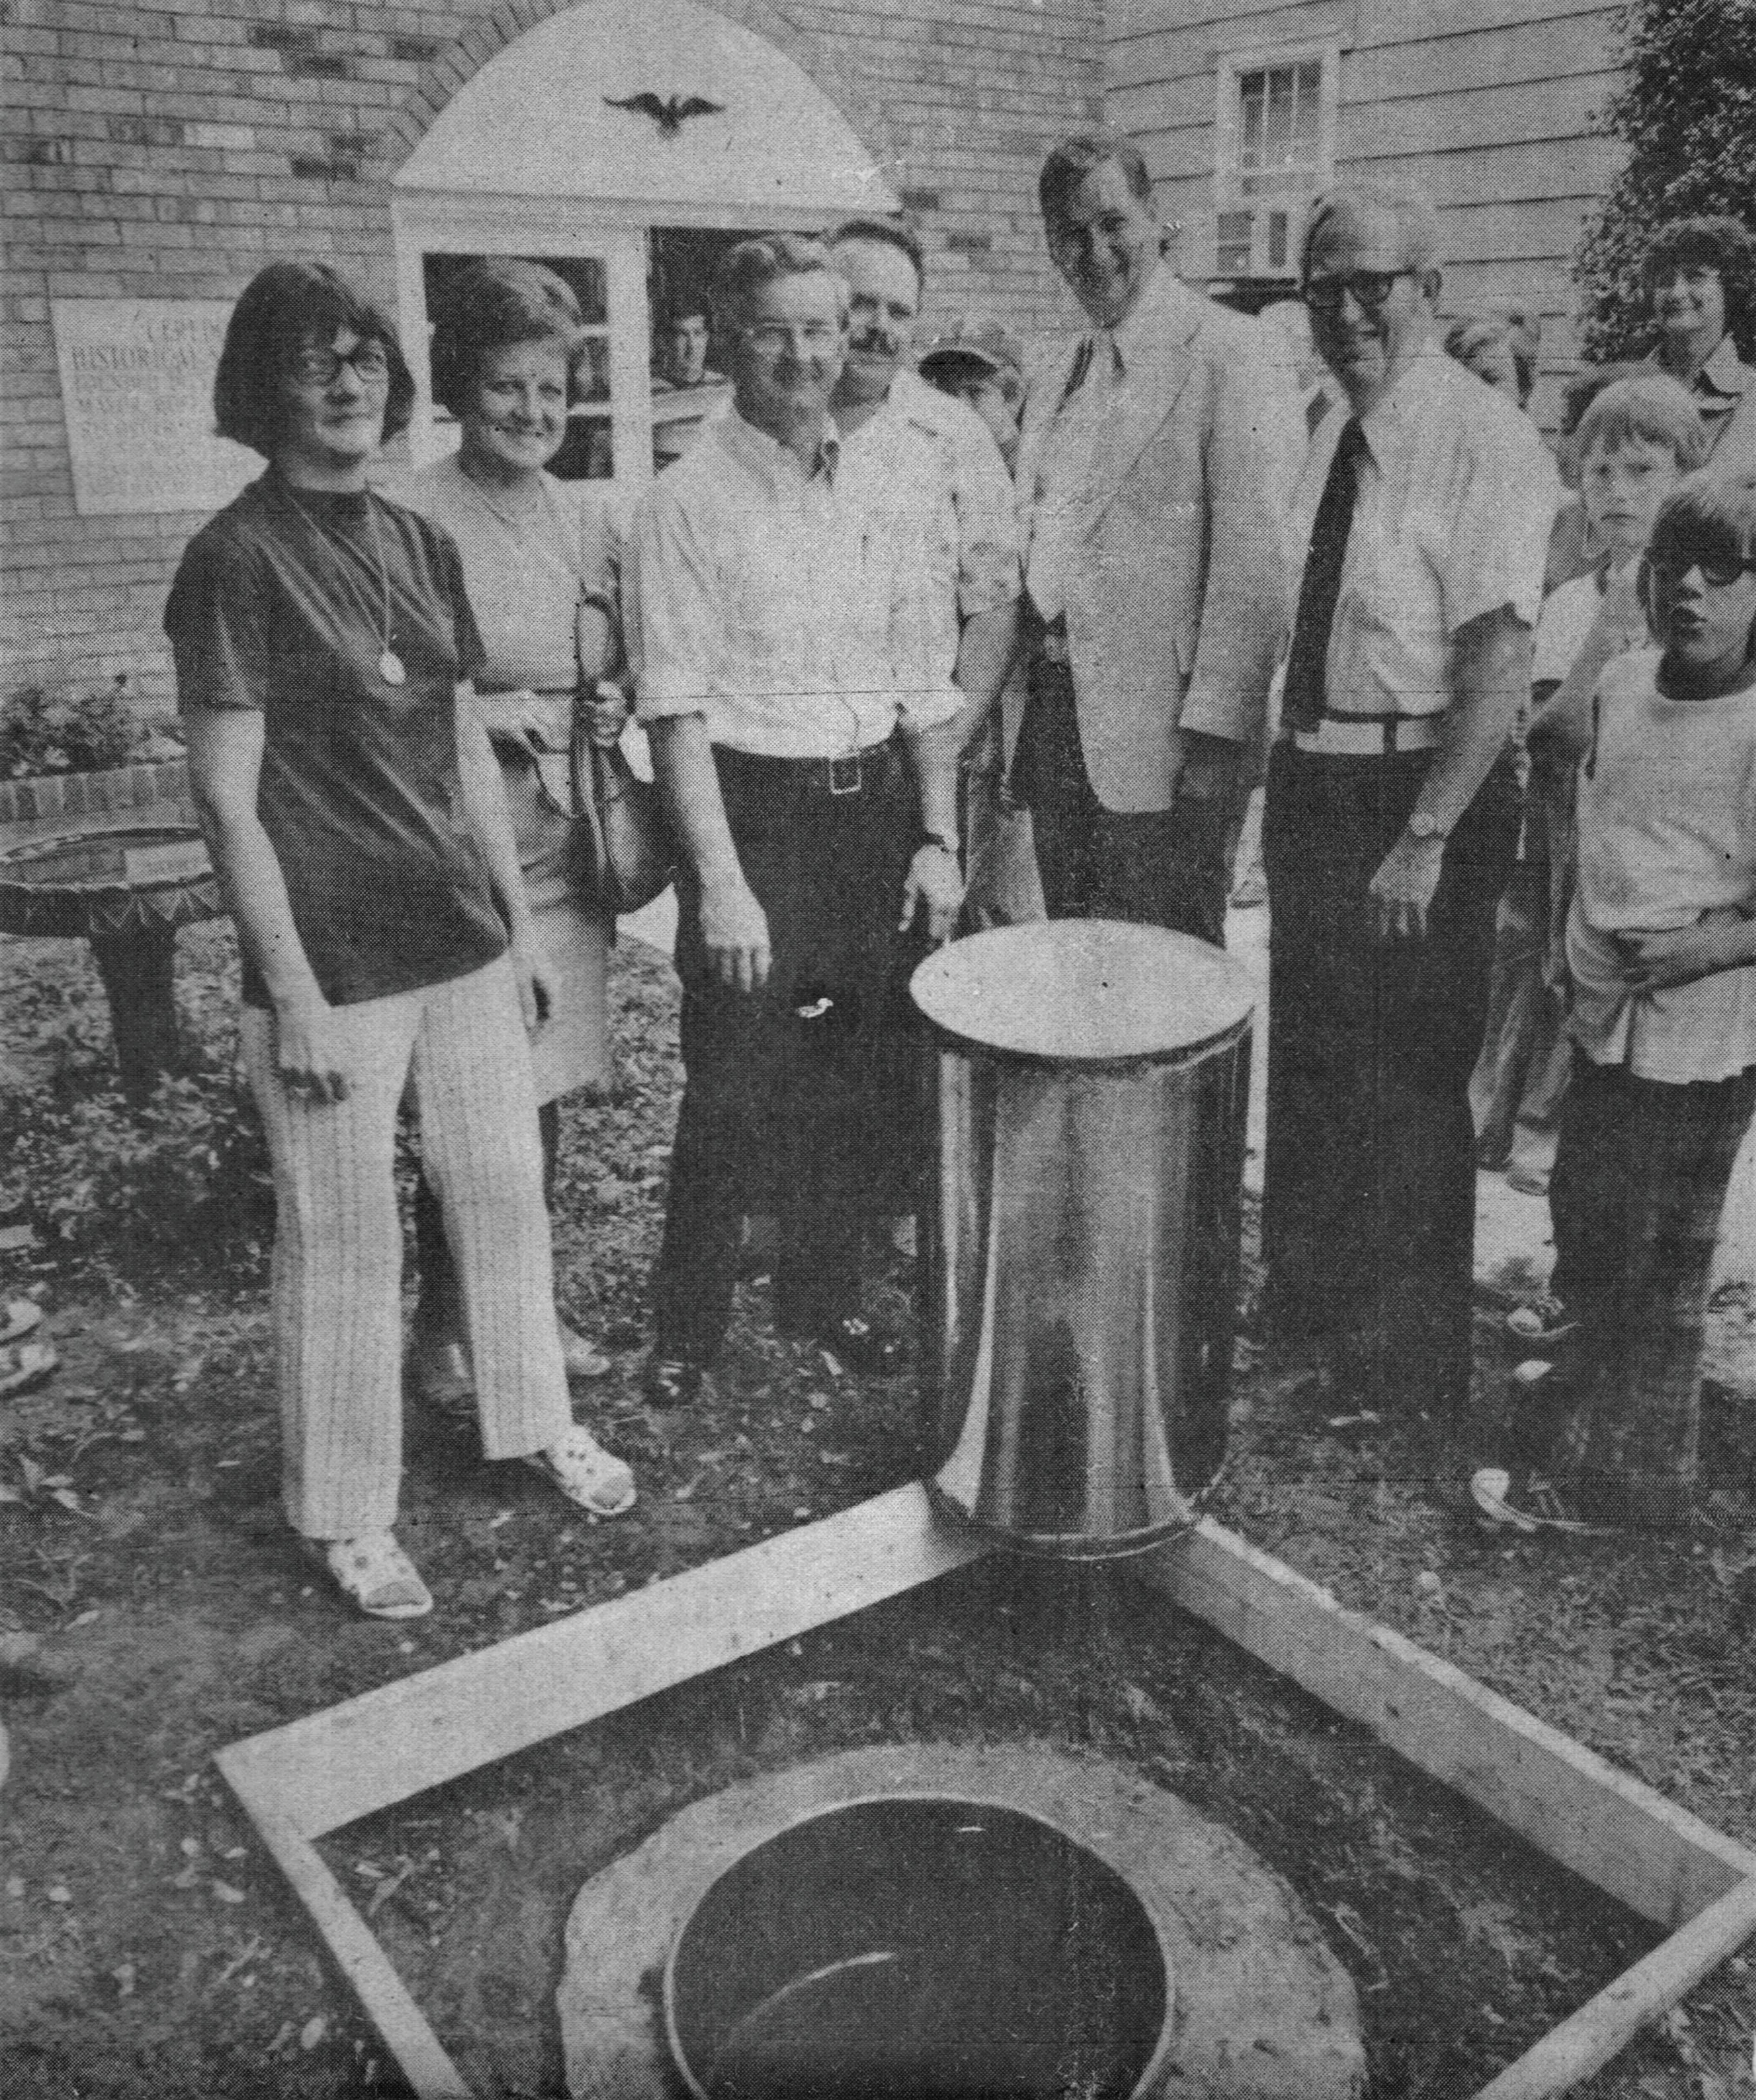 A time capsule was buried in the front lawn in July 1976, and is to be opened in 2076. Courtesy of the Ceredo Museum.